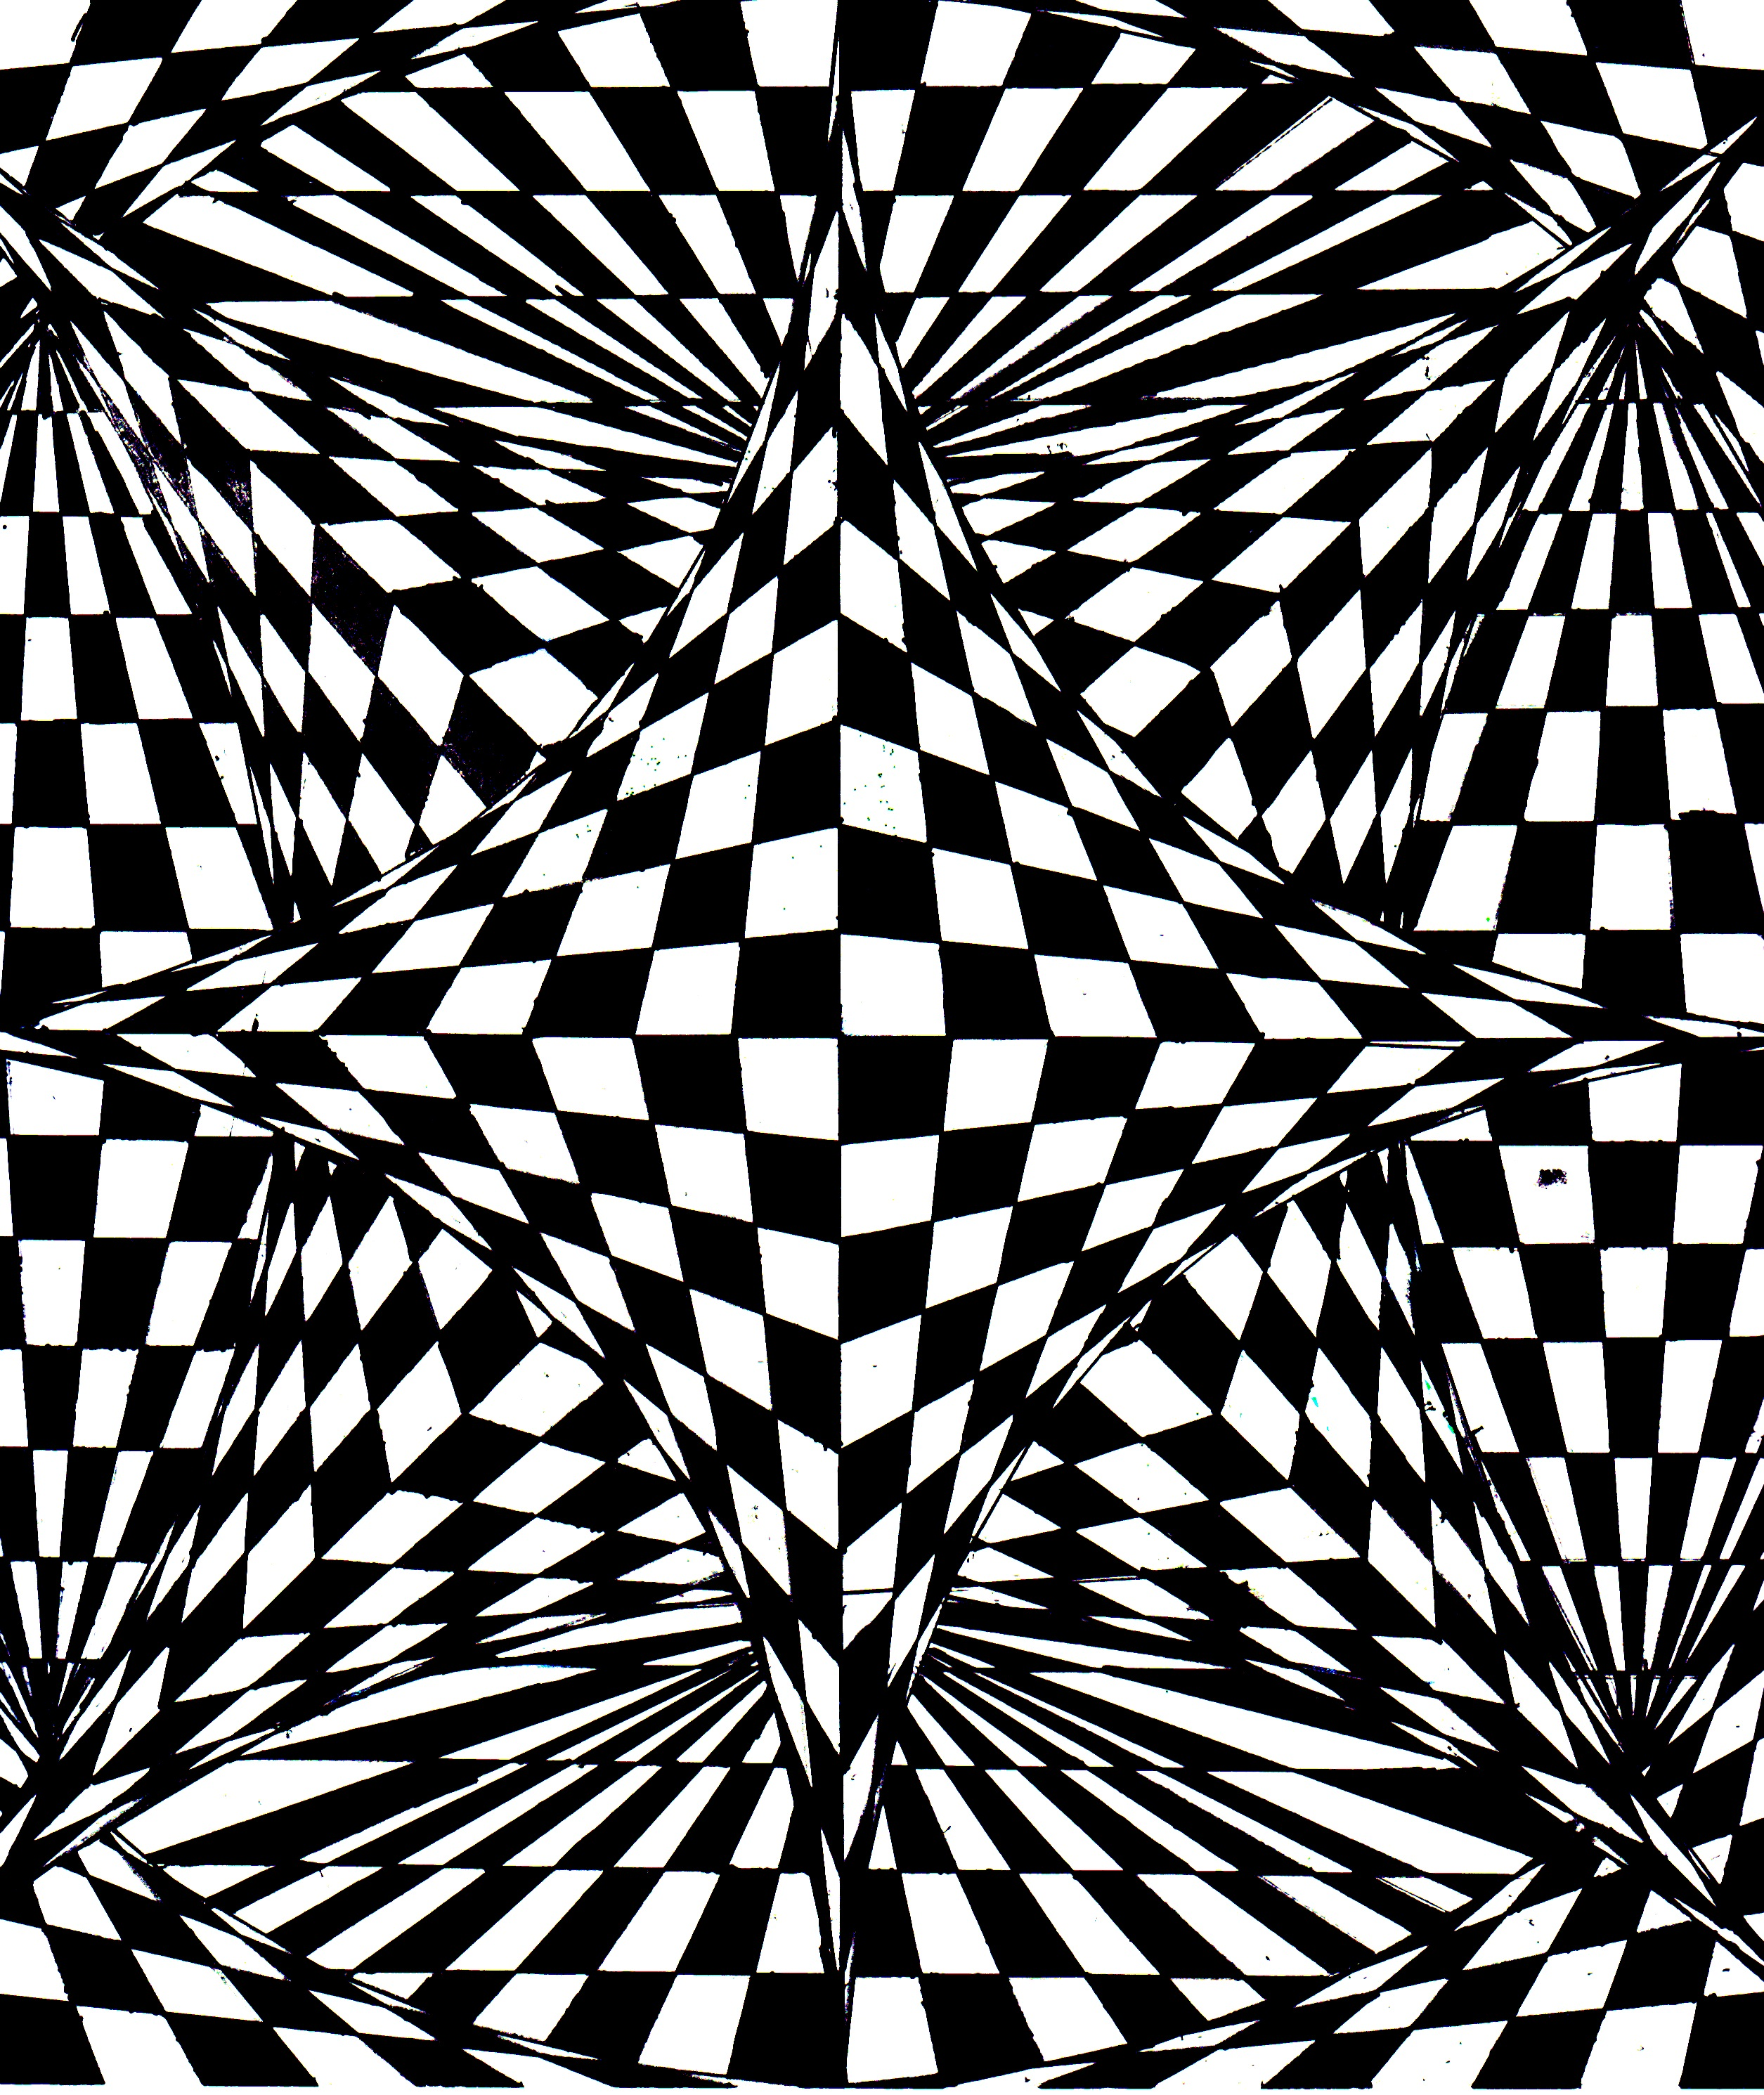 Line Design Op Art : Images about op art on pinterest